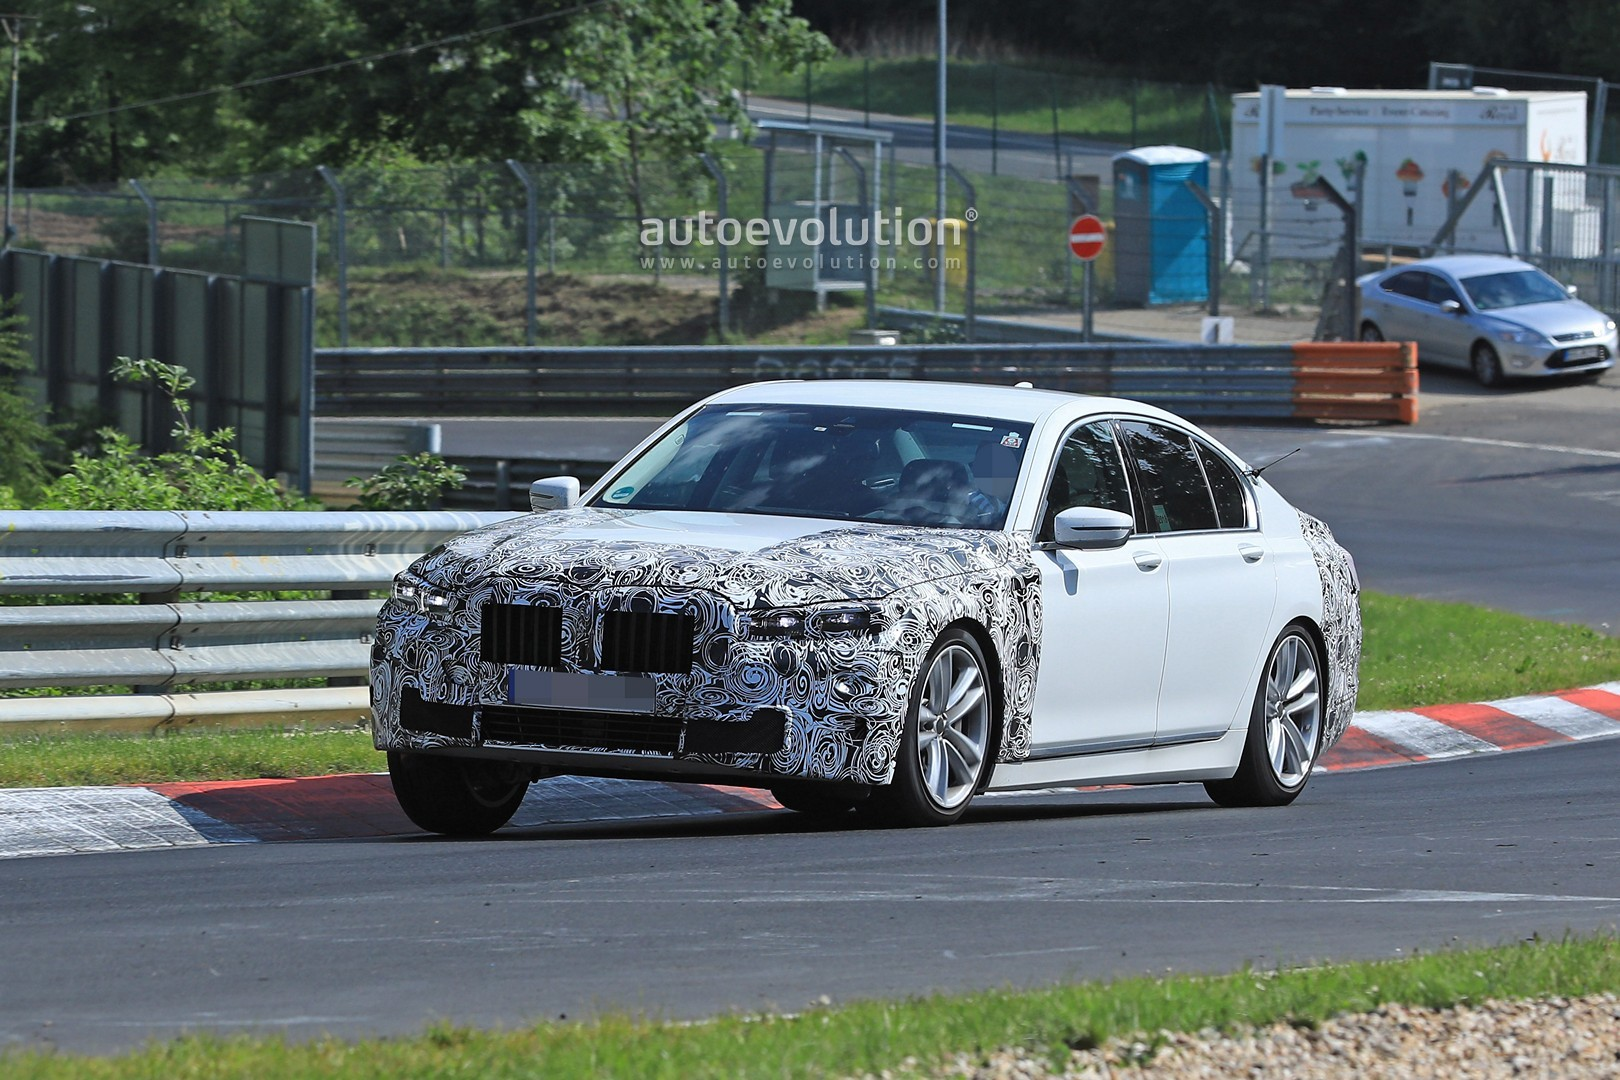 2020 Bmw 7 Series Facelift Gets Pig Nose Face Thanks To X7 Grille